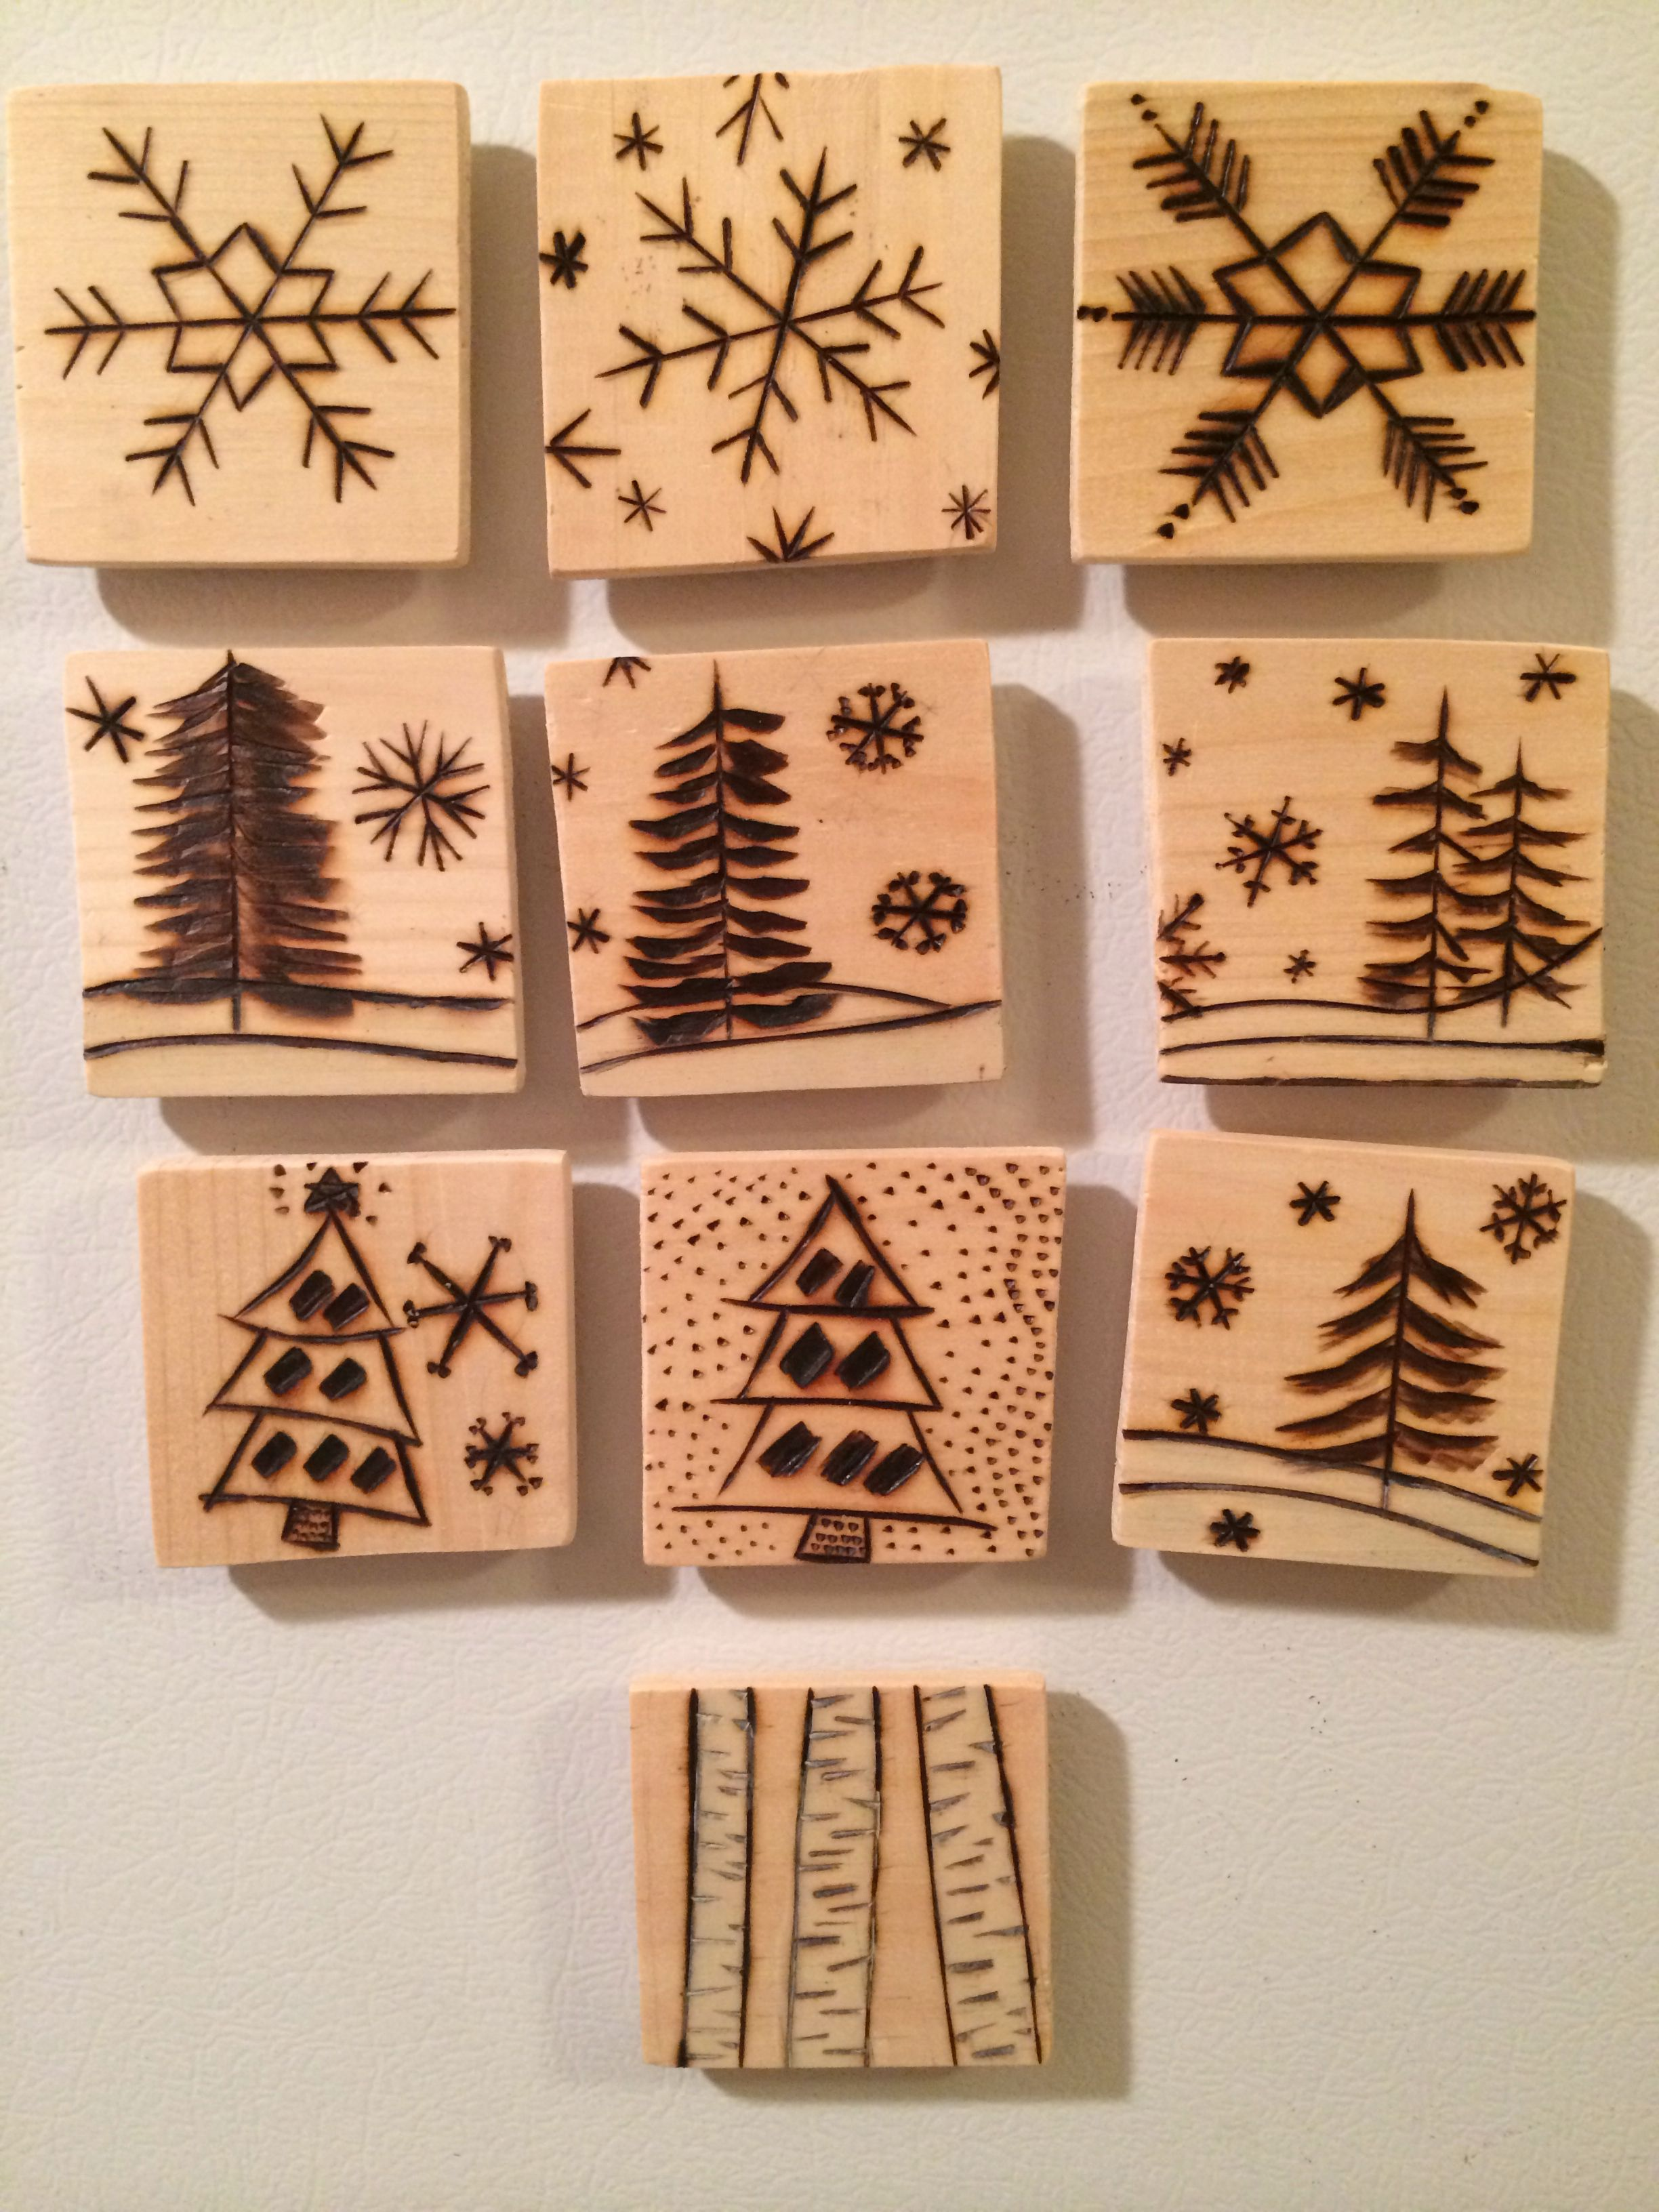 woodburning craft | craft ideas | pinterest | wood burning crafts